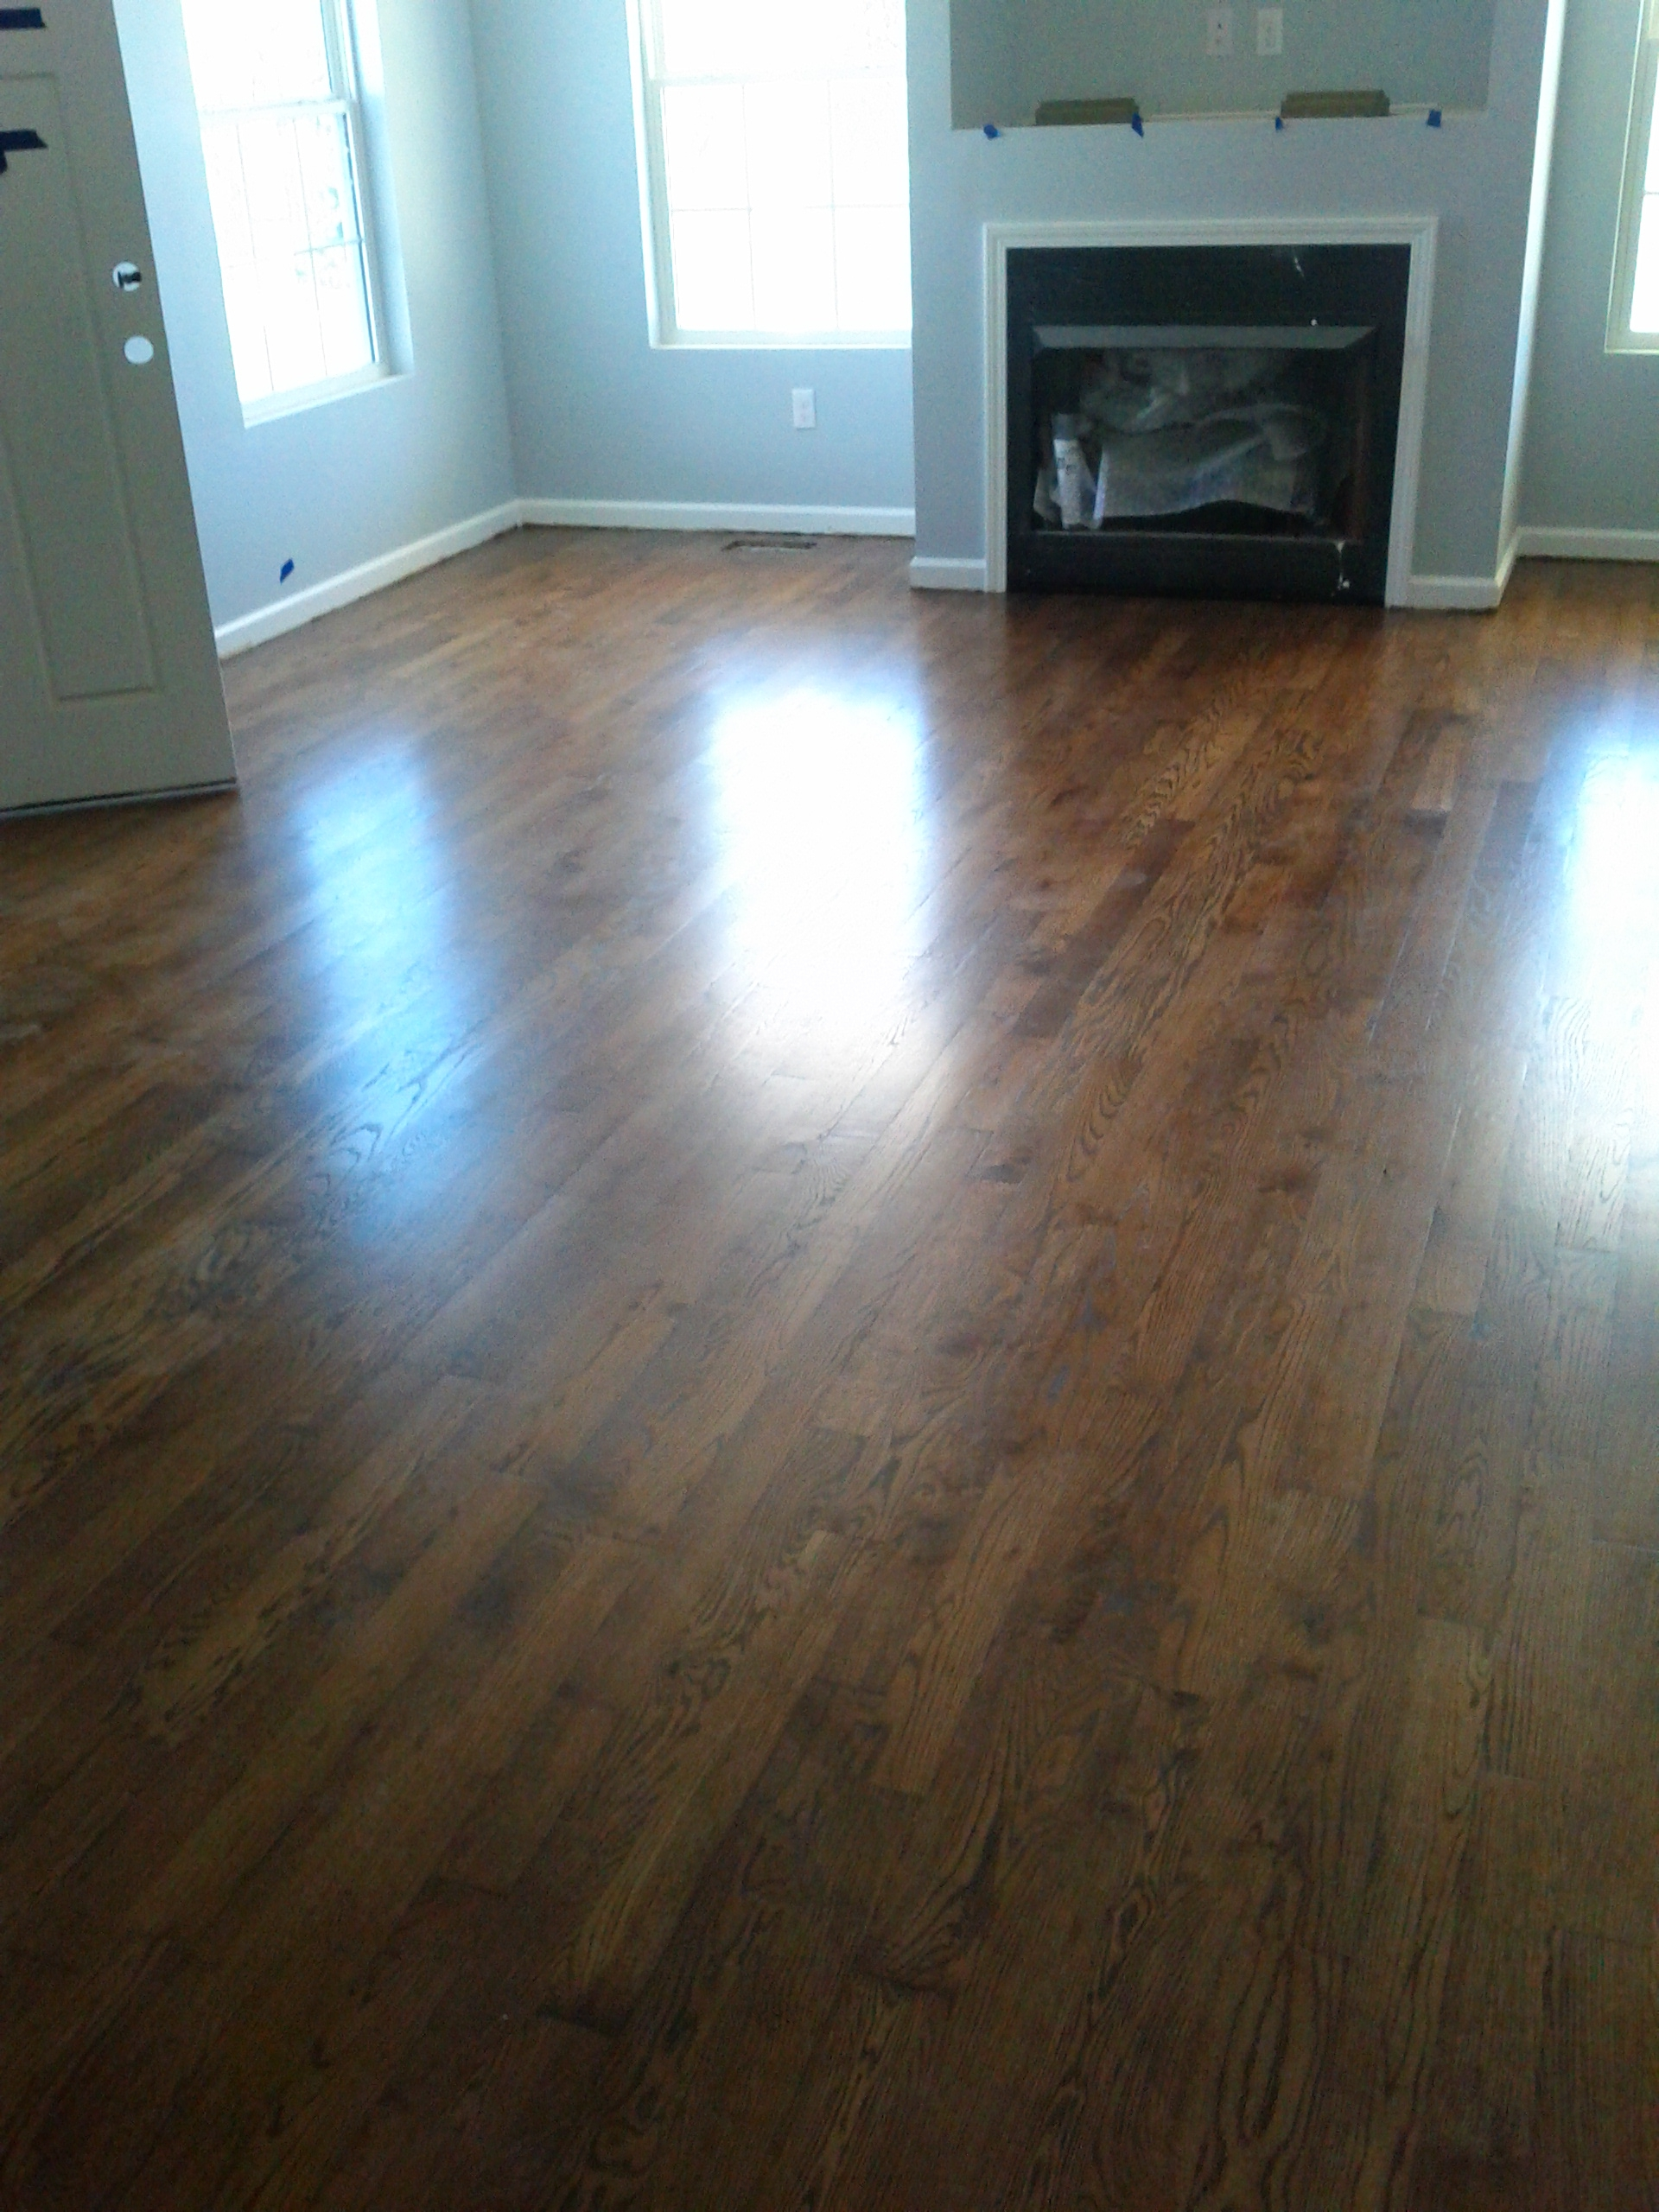 Nashvillehardwoodflooring Just Another Wordpress Site